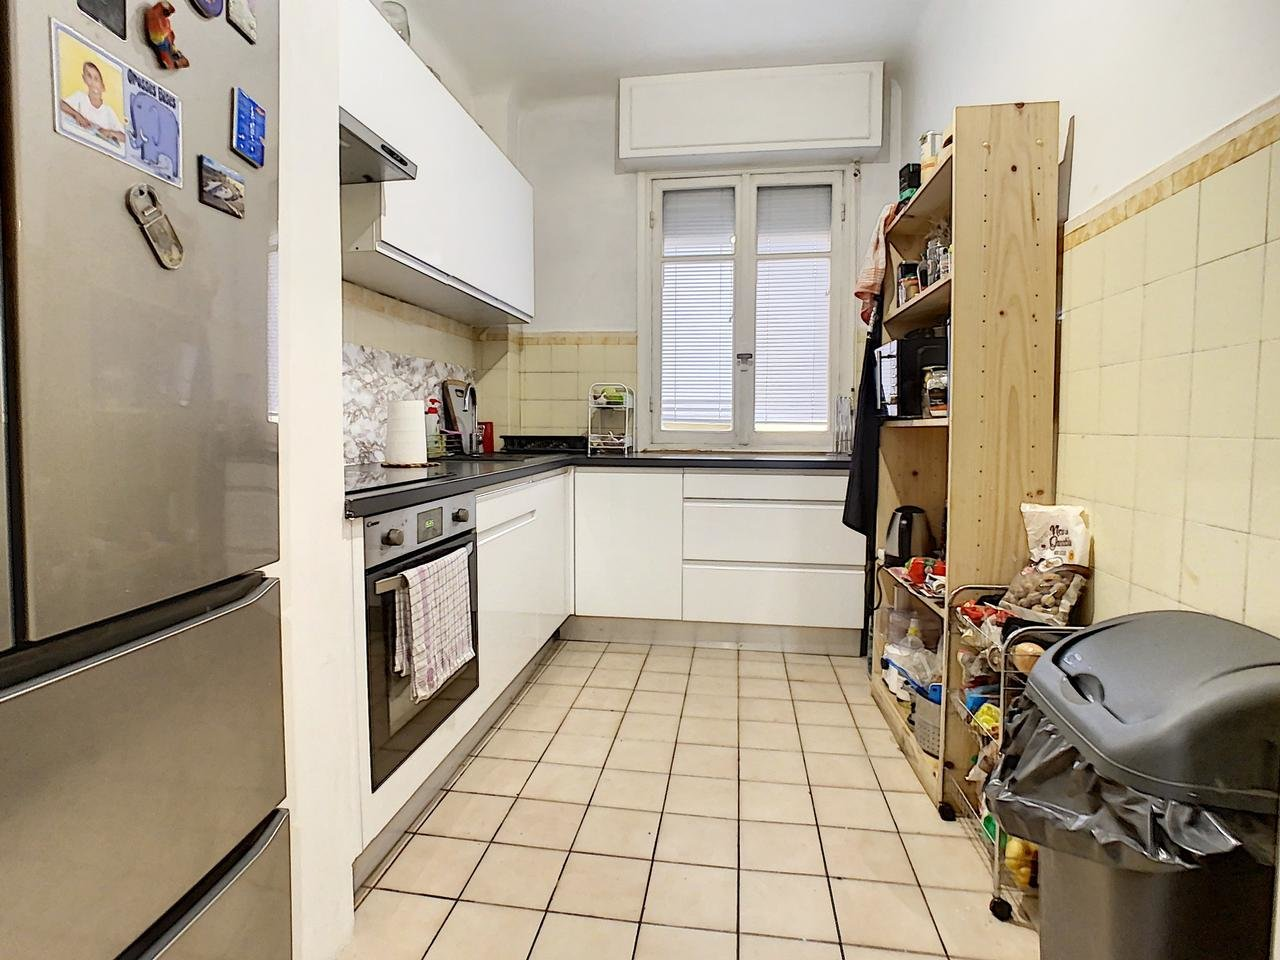 Appartement  3 Rooms 76.53m2  for sale   345000 €